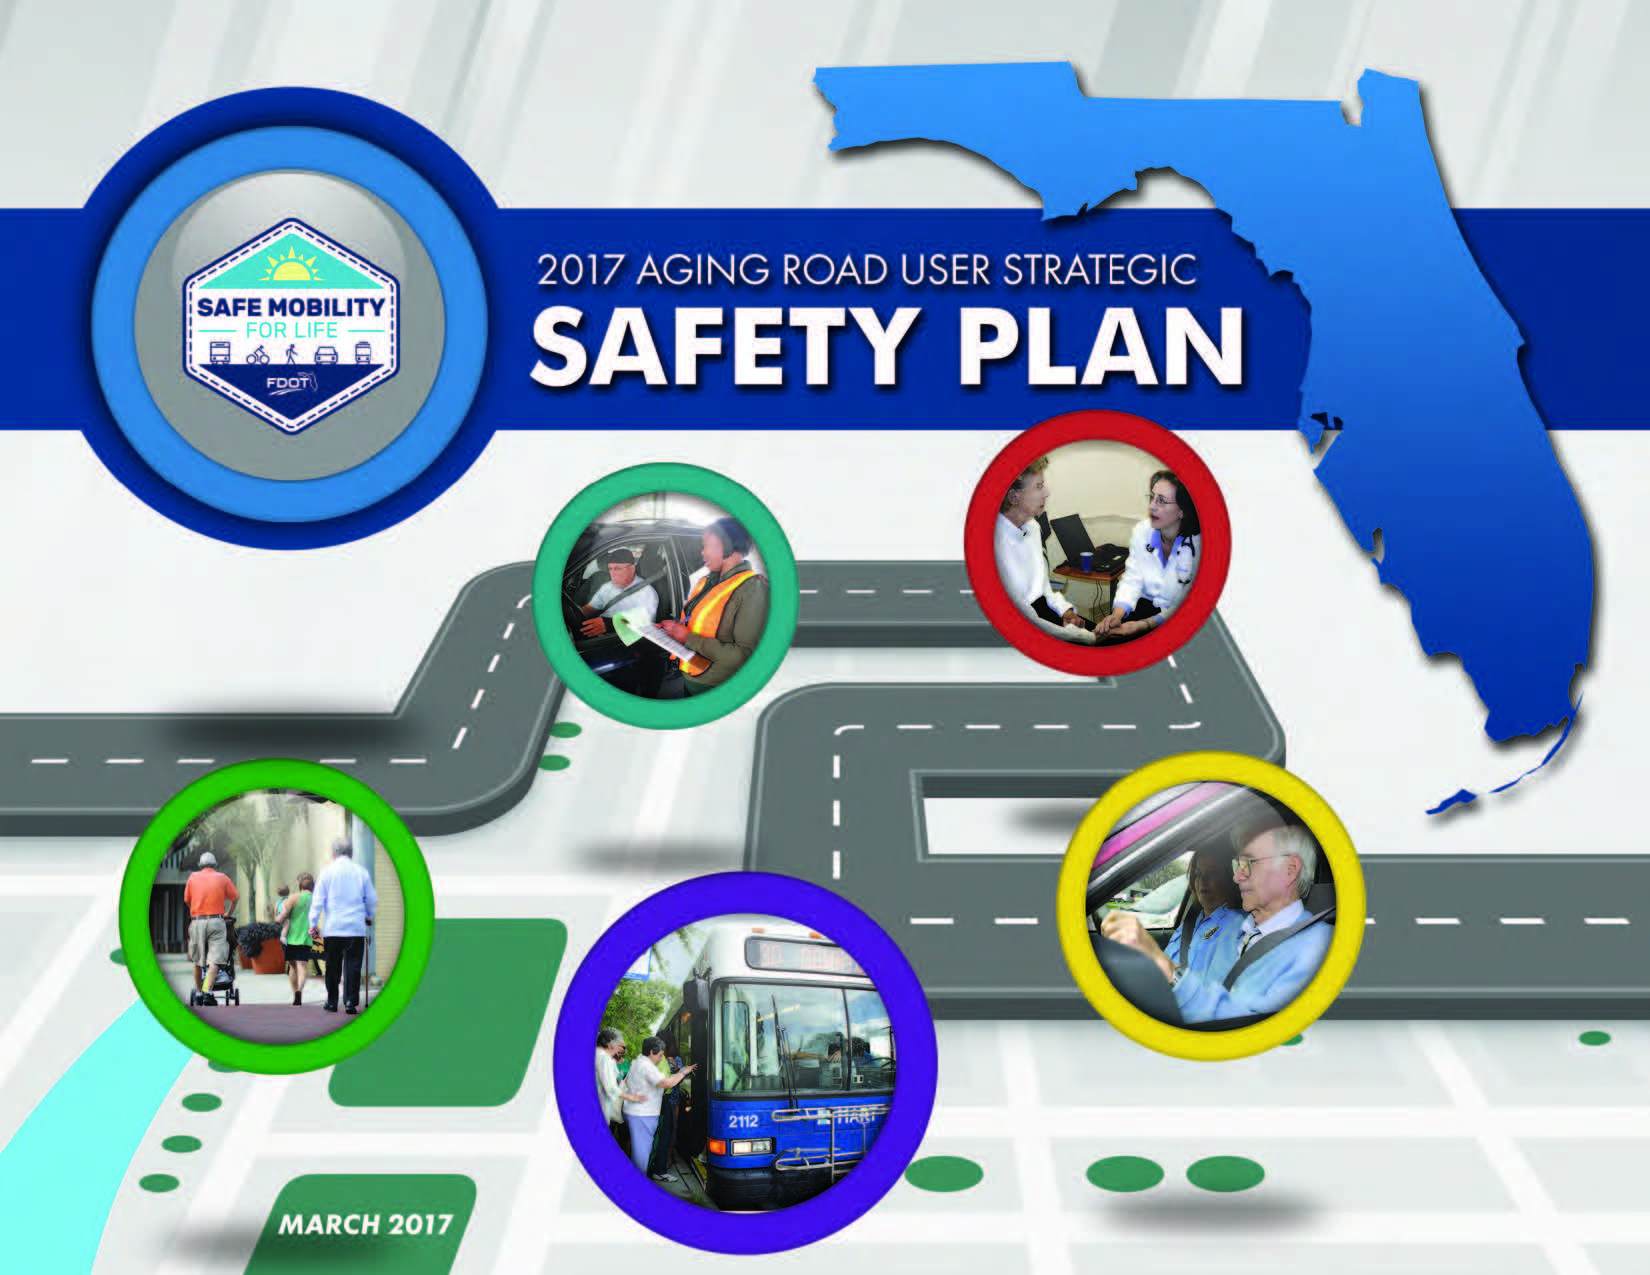 Florida's Aging Road User Strategic Safety Plan Cover